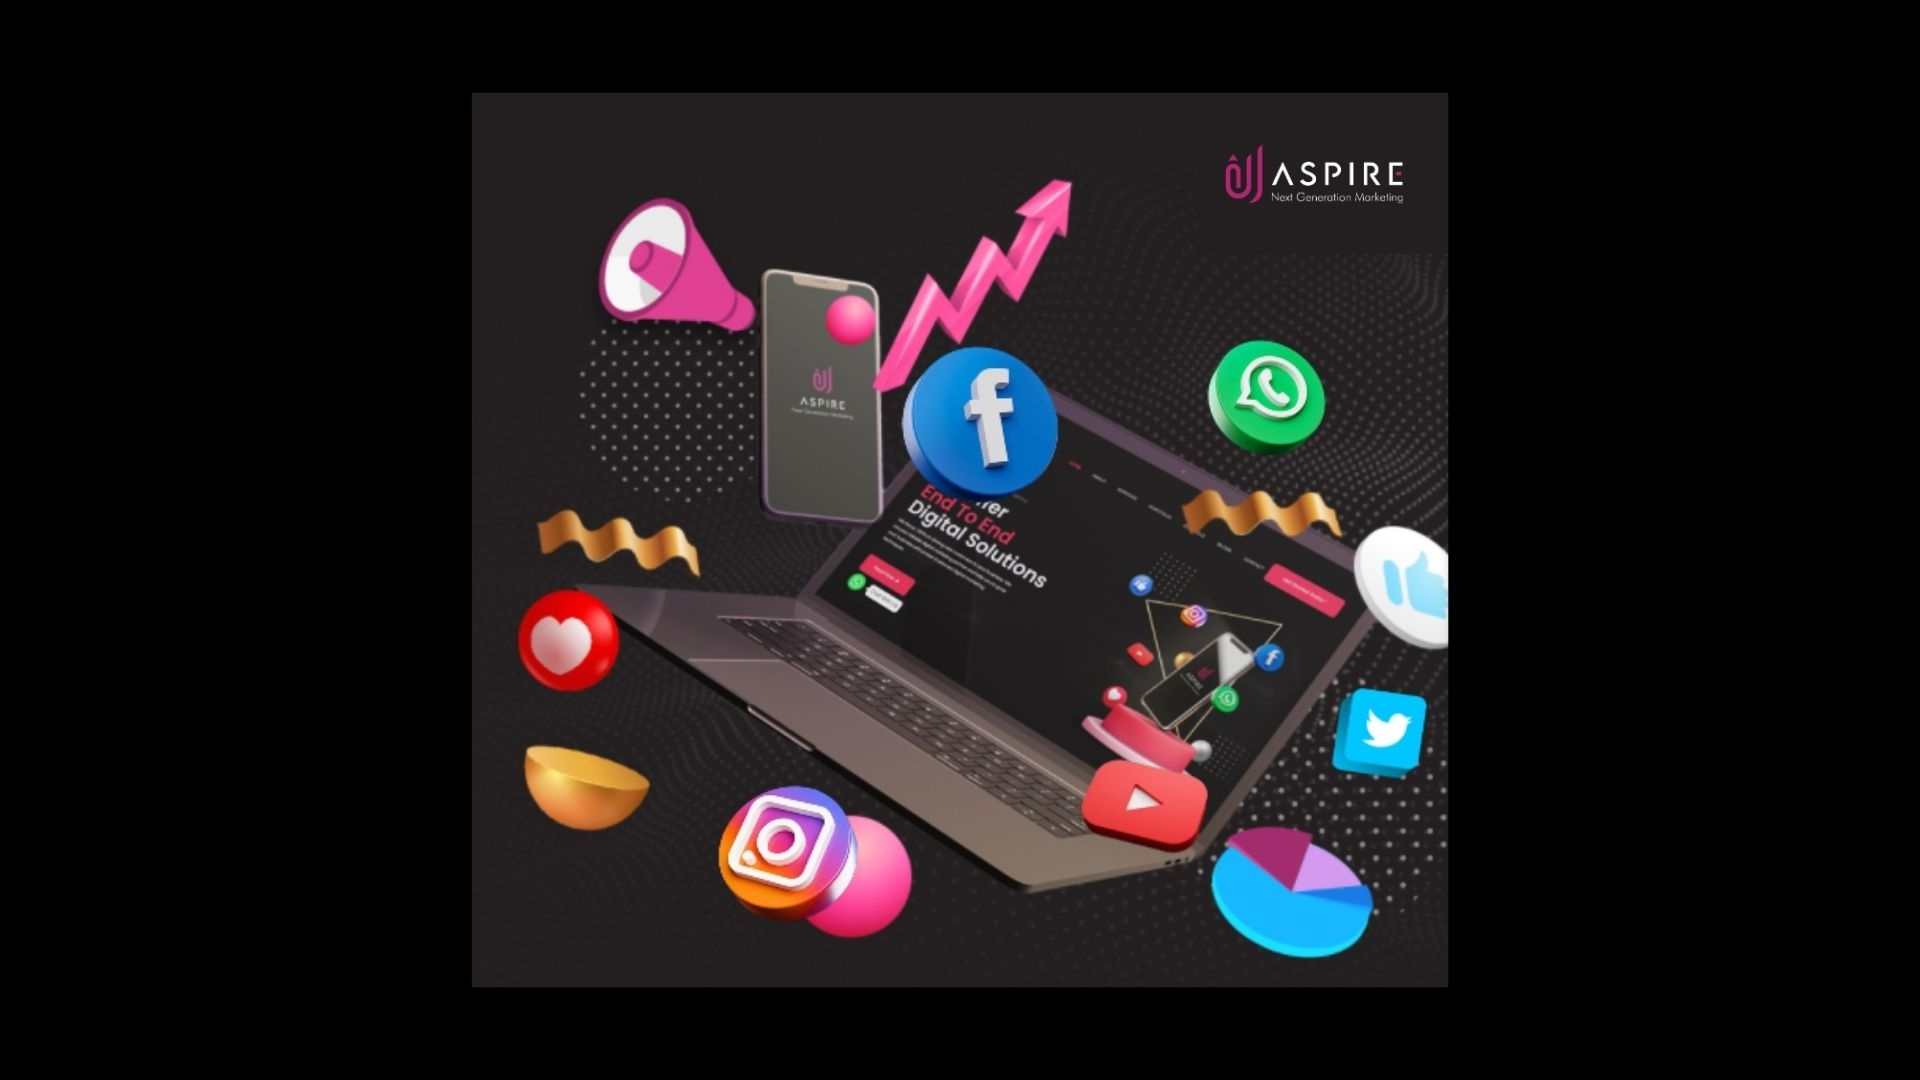 As (@aspiremarketers) Cover Image